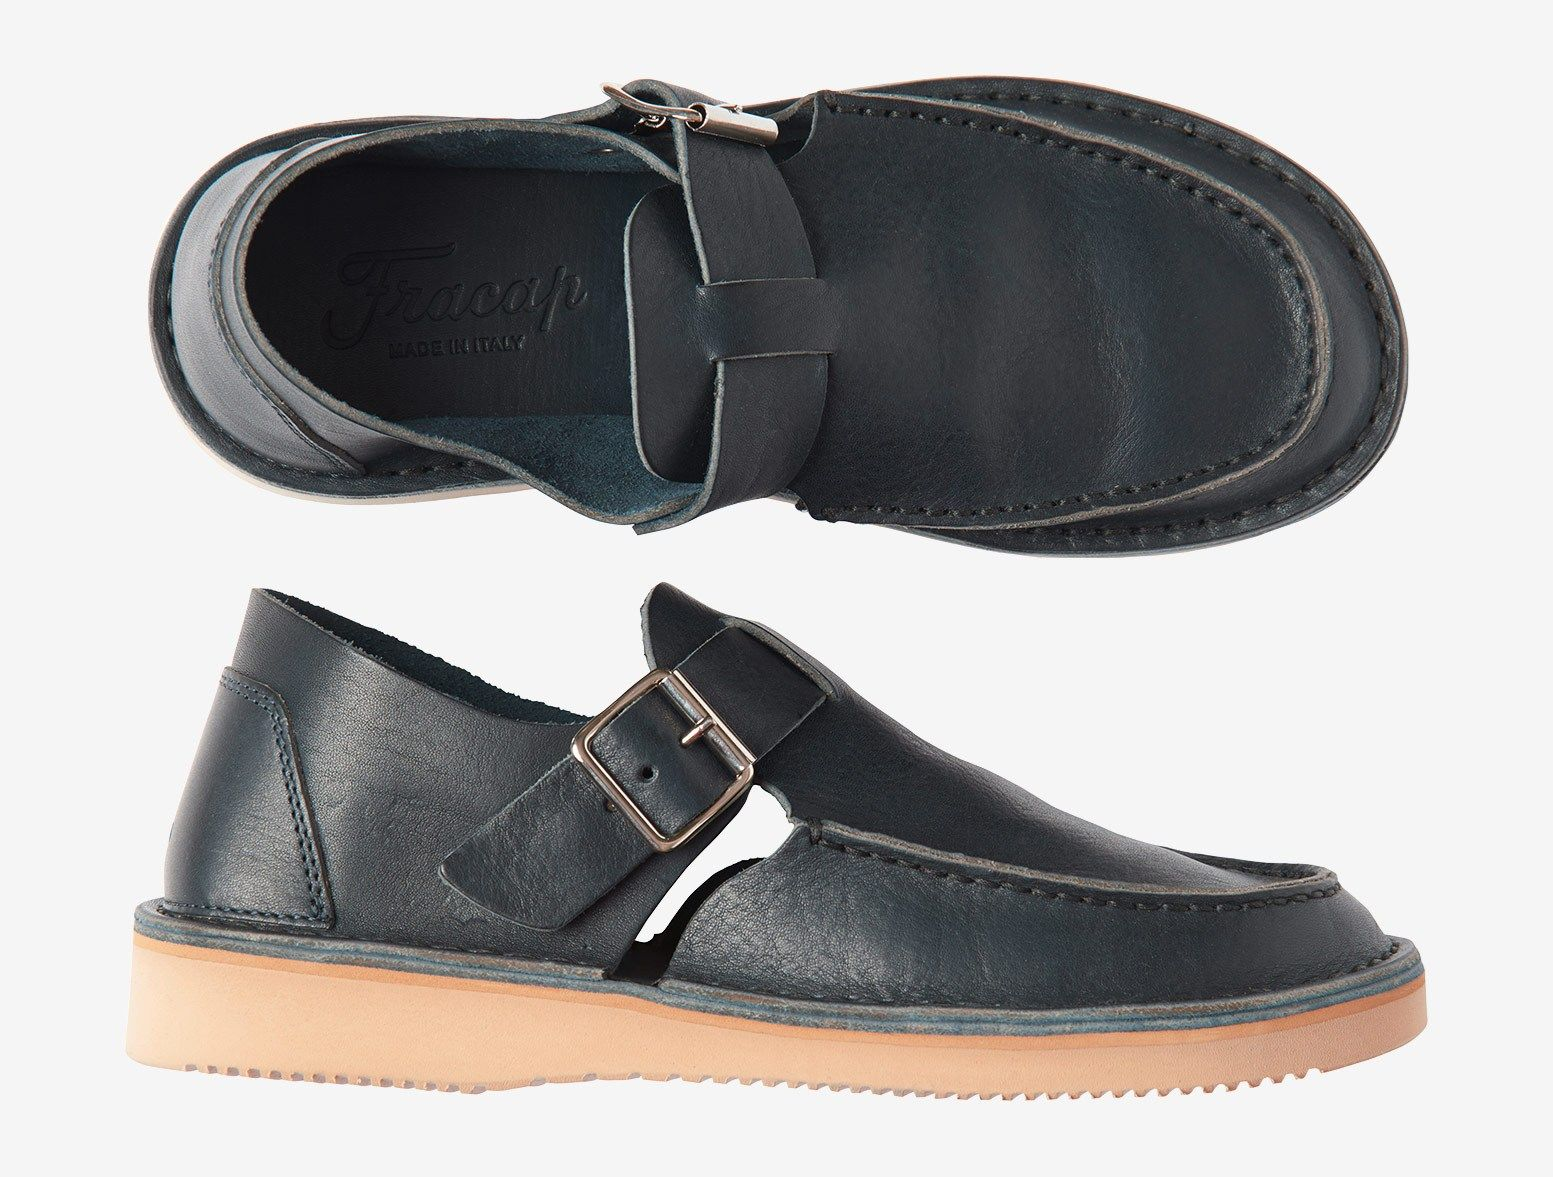 dcb30f2ecbd94 Veg tanned Italian leather upper. Leather insole. Rubber sole ...